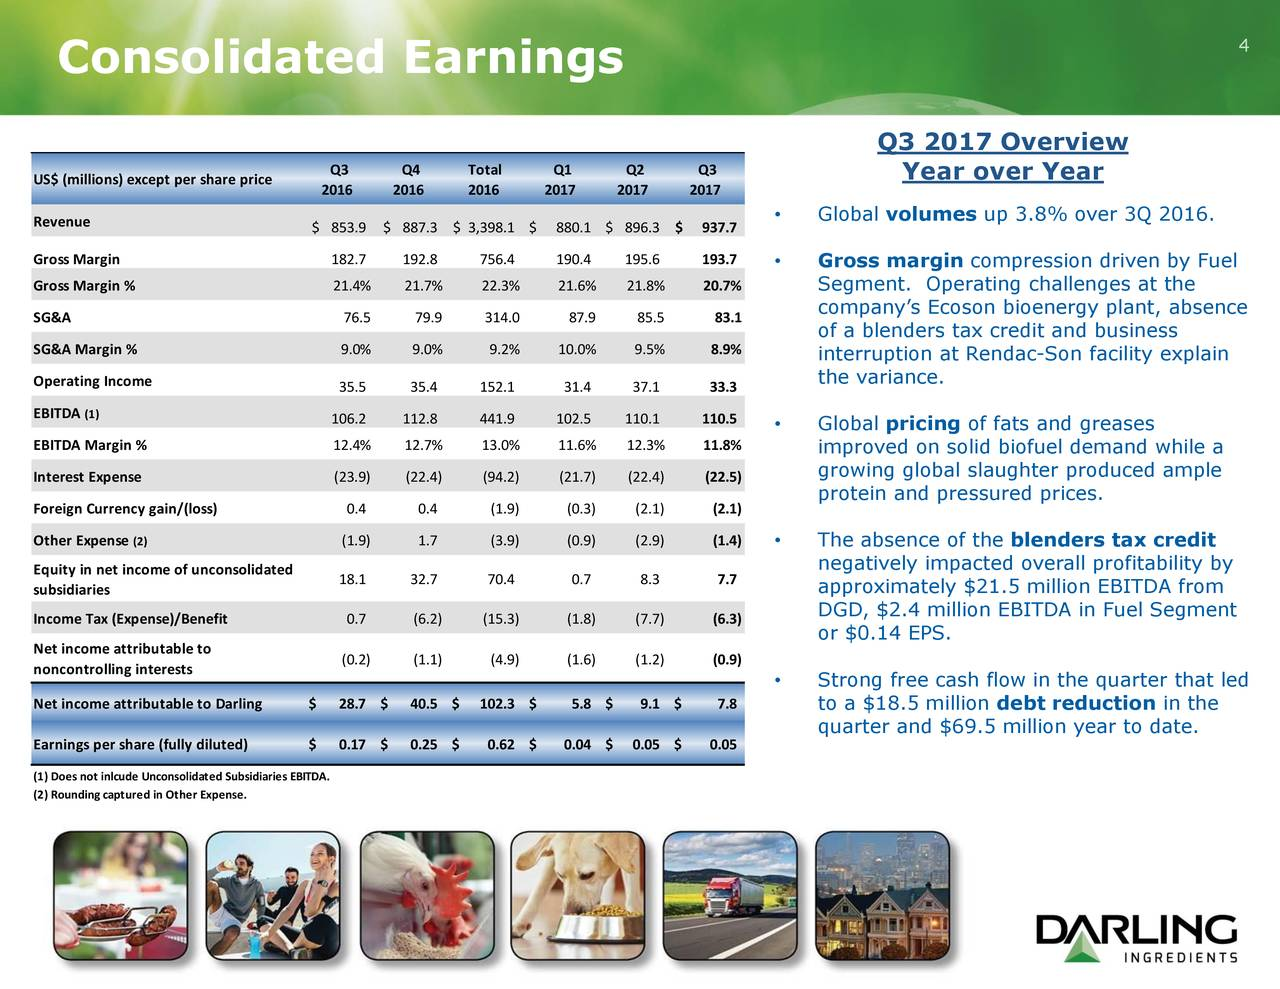 Darling Ingredients Inc. 2017 Q3